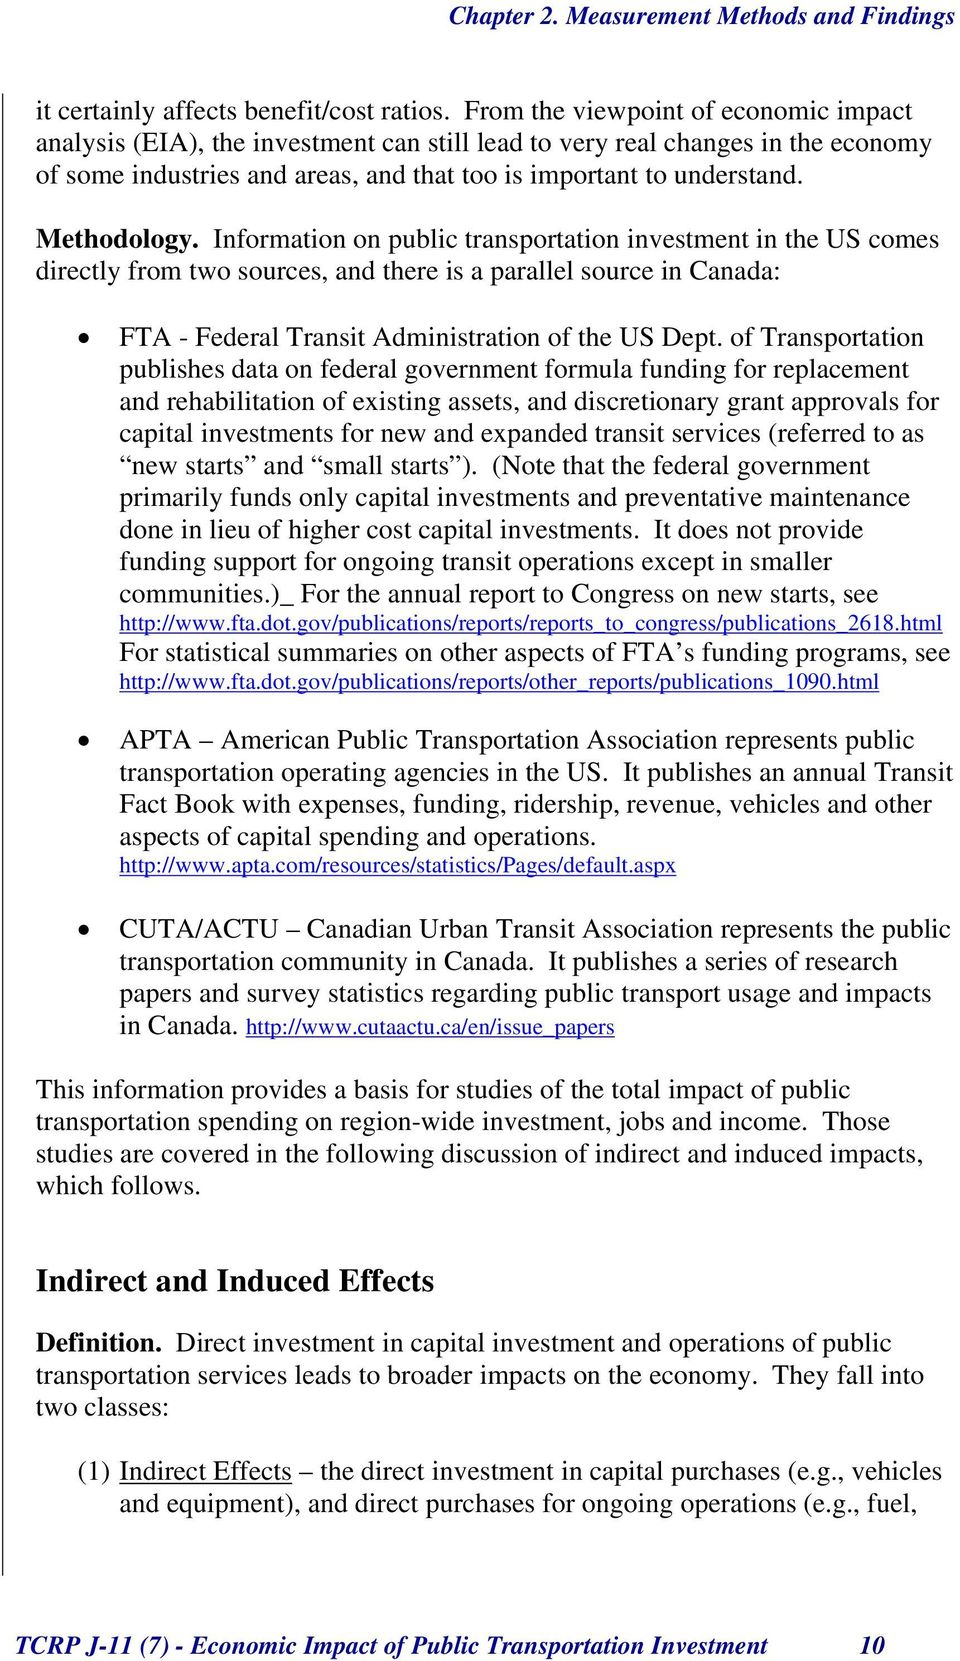 Methodology. Information on public transportation investment in the US comes directly from two sources, and there is a parallel source in Canada: FTA - Federal Transit Administration of the US Dept.